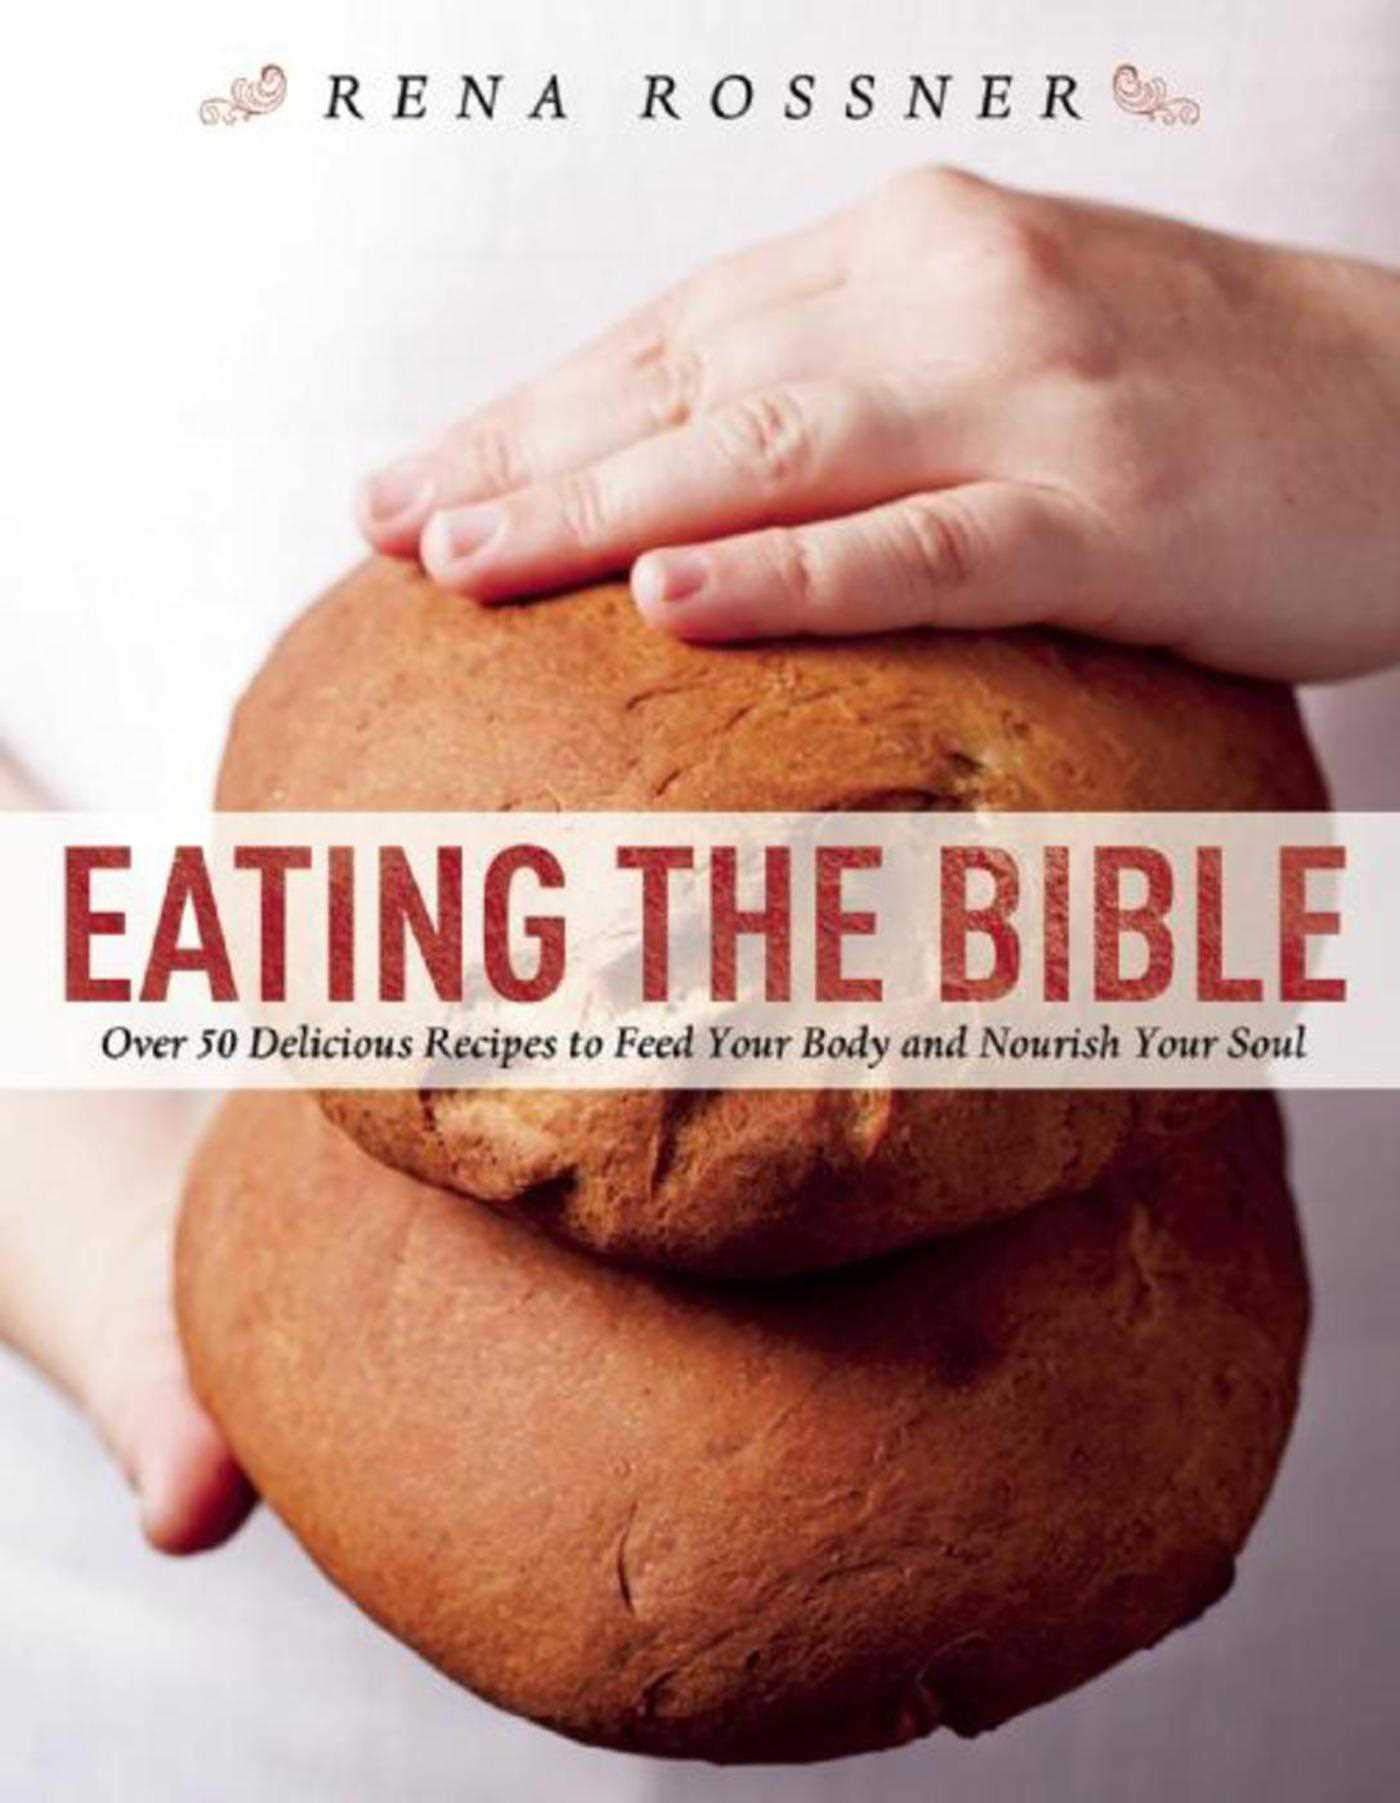 Eating the Bible: Over 50 Delicious Recipes to Feed Your Body and